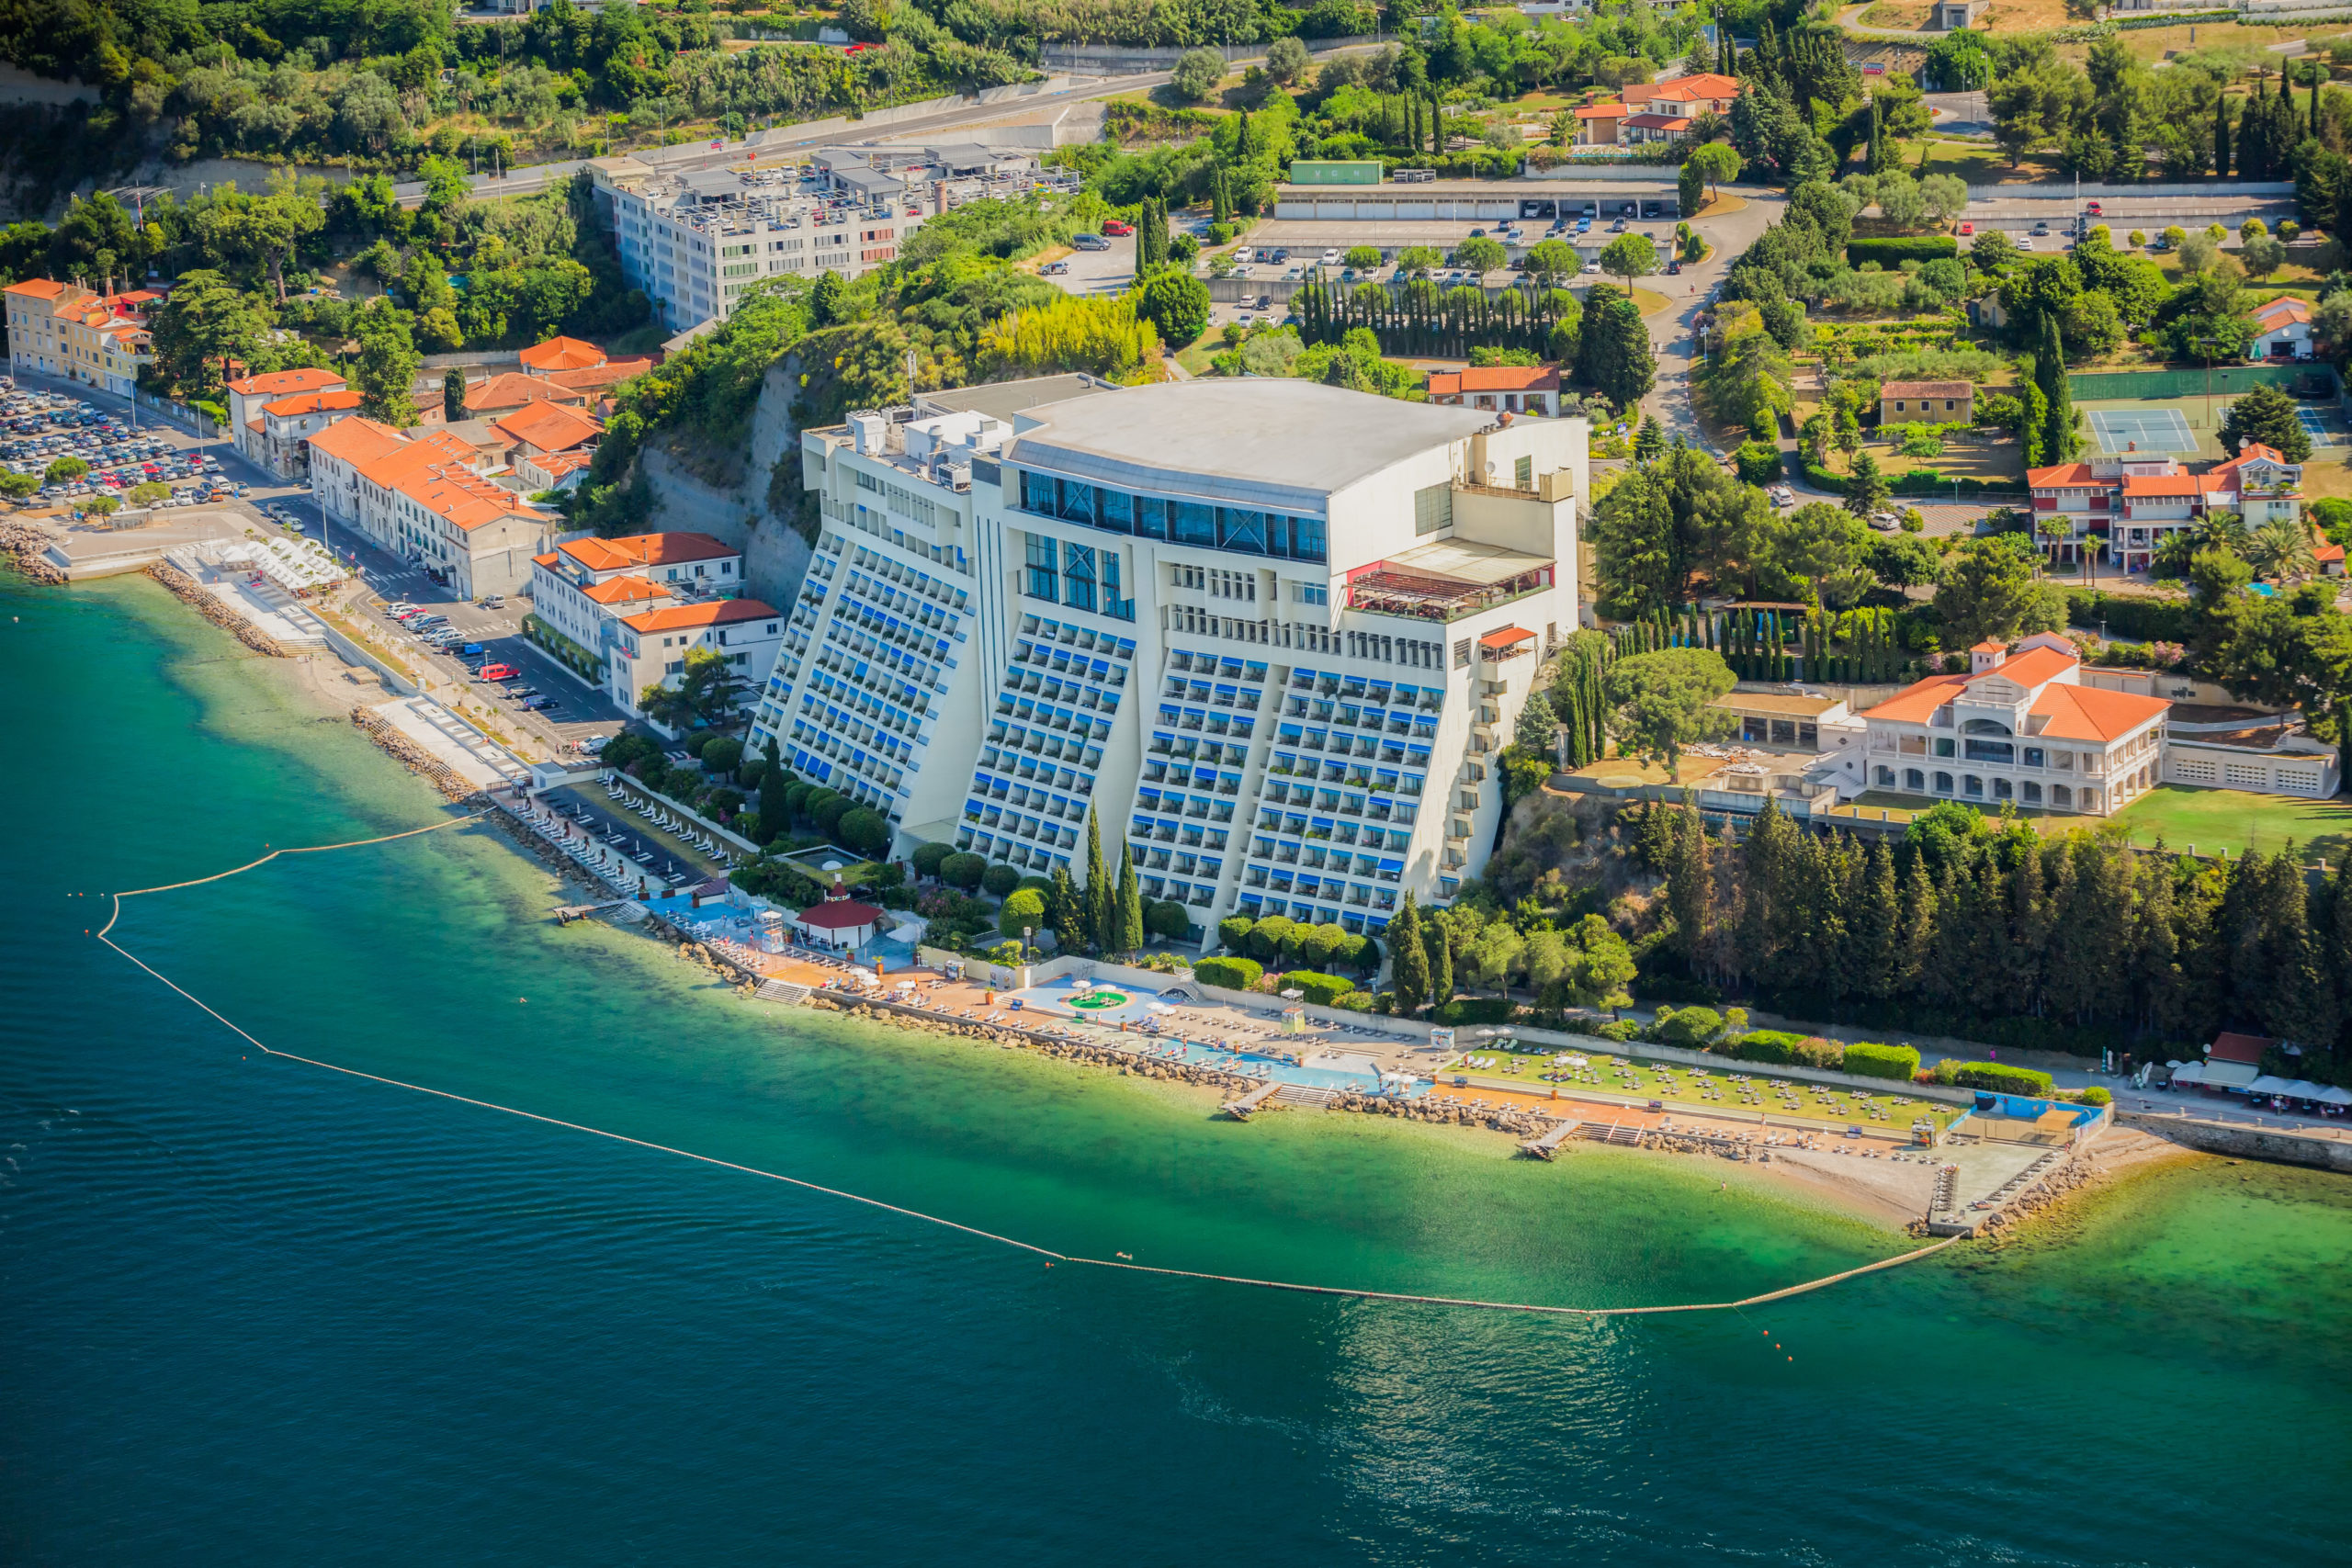 Grand hotel Bernardin-beach-panorama-from-air